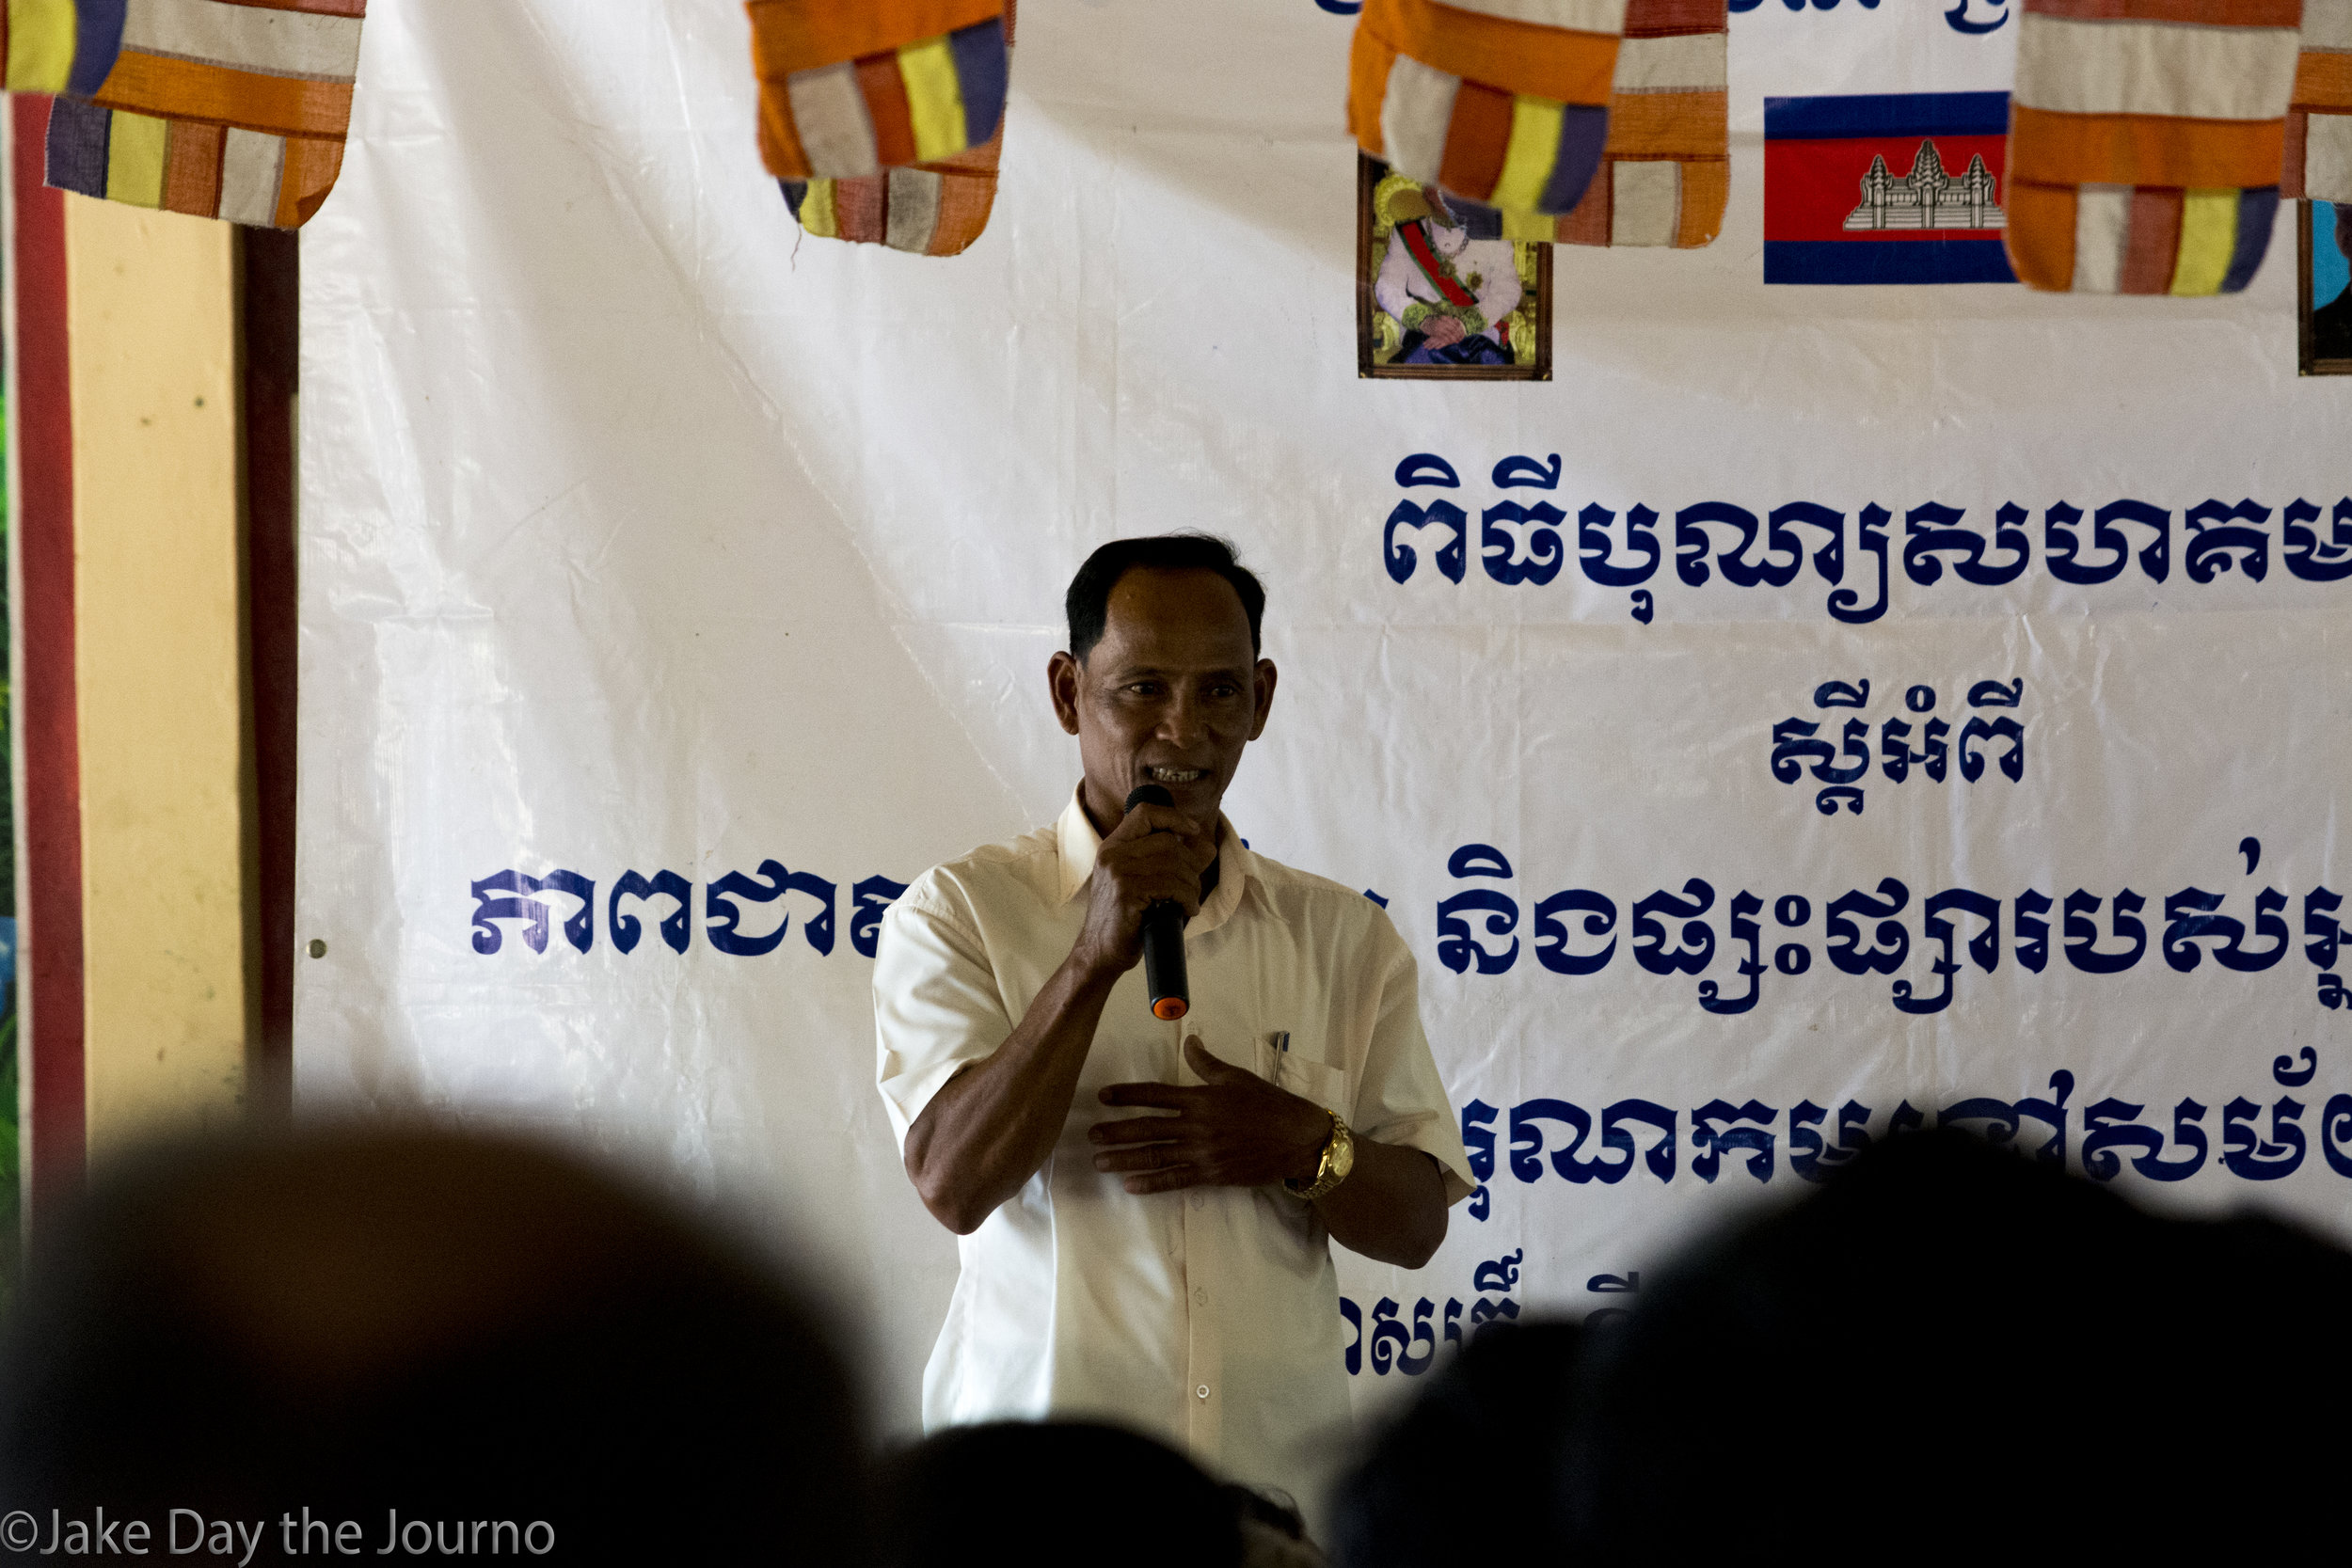 Commune Chief Skonn Sakin gives a speech during a testimonial ceremony organised by the Transcultural Psychosocial Organisation for the 'Healing and Reconciliation for Victims of Torture of Khmer Rouge Trauma' program at Ta Ann village, Ta Ann commune, Kralanh district, Siem Reap province on 18/01/18 by Jake Day.